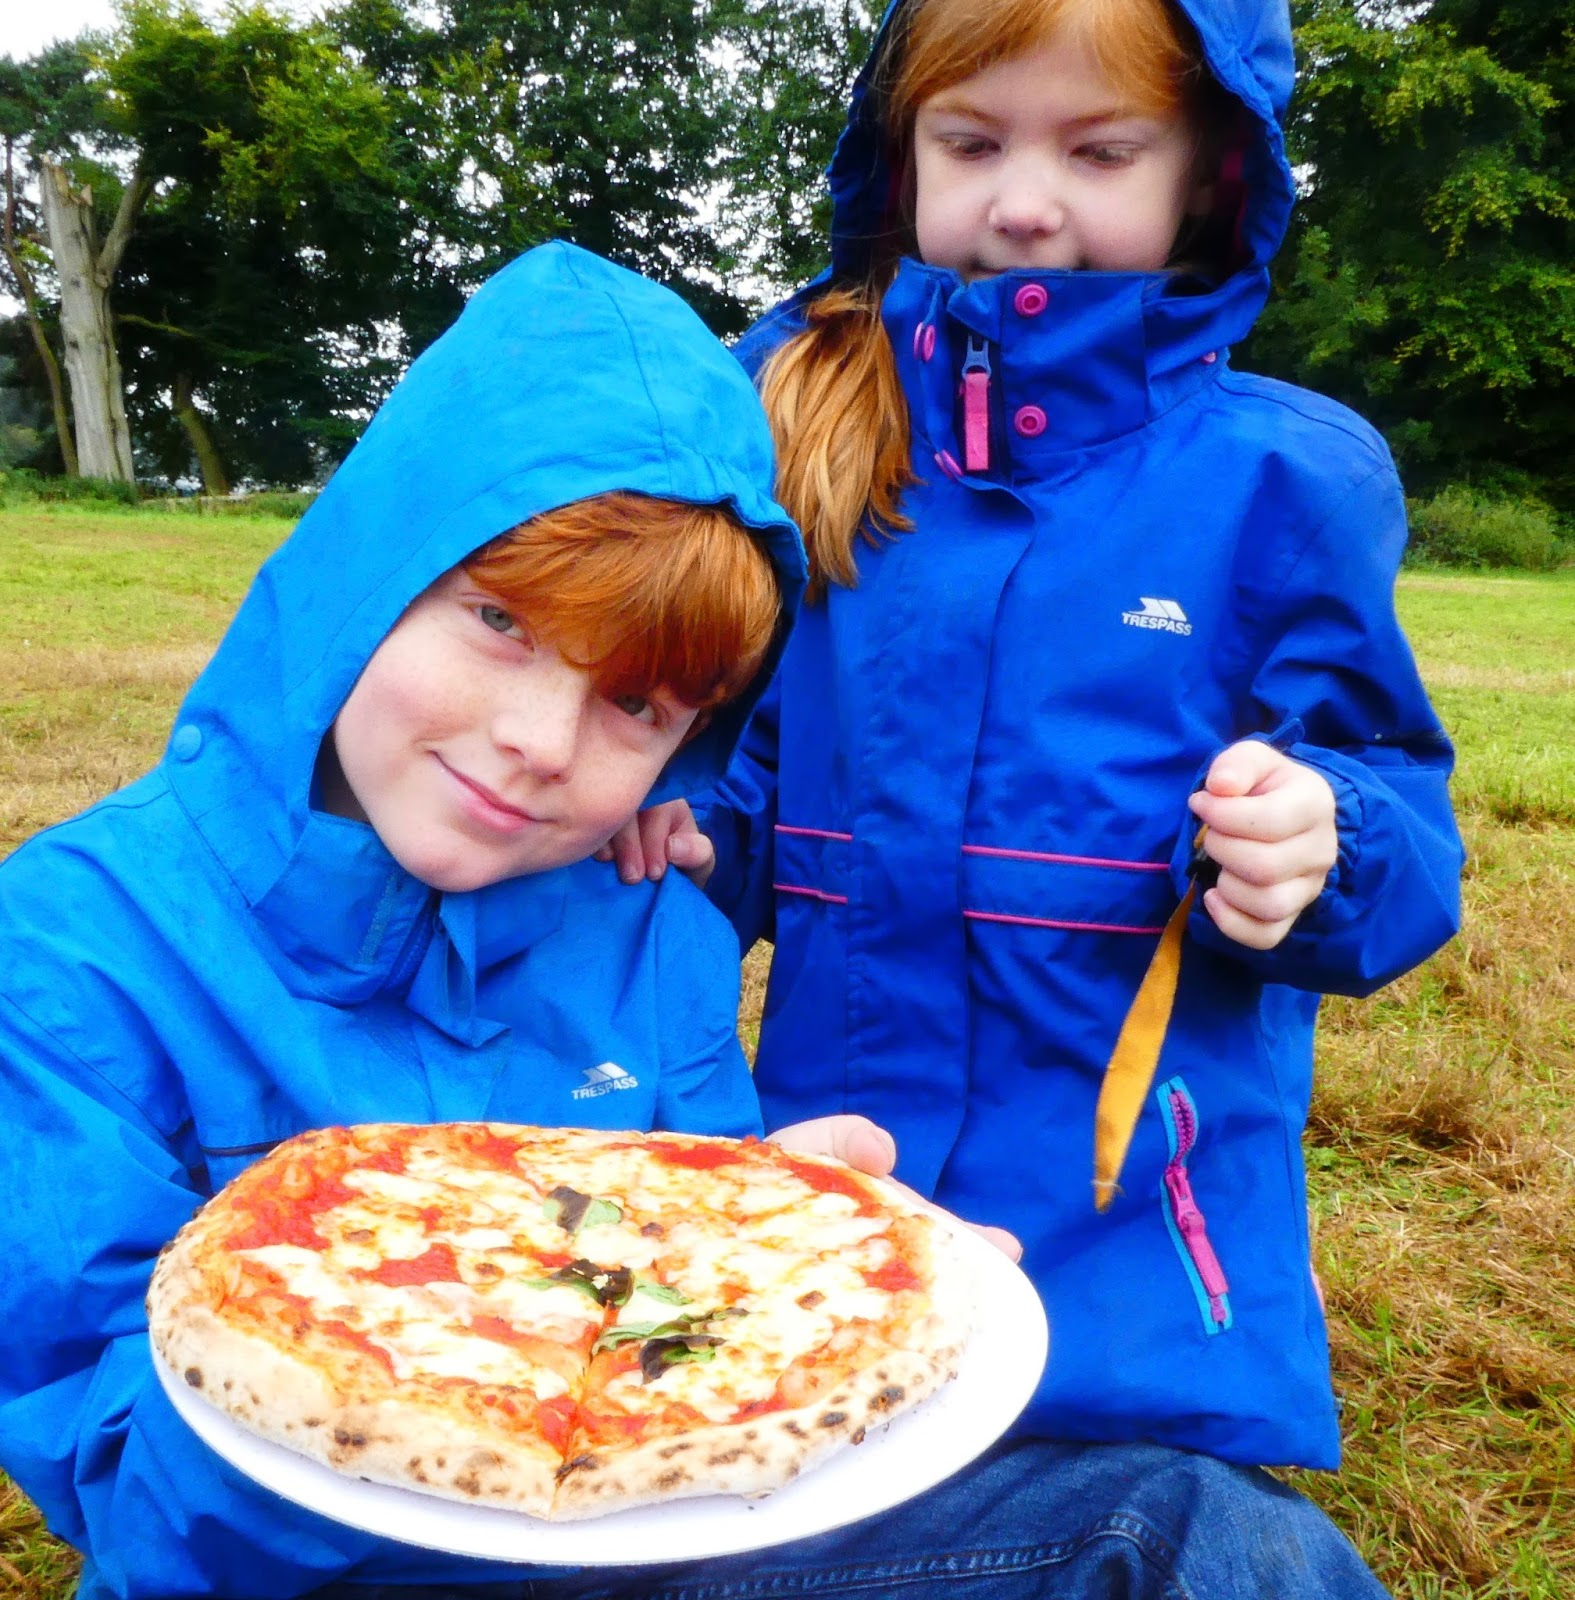 We're heading to Festival on the Wall in Northumberland and the Just So Festival in Cheshire this year. Here are our 10 Essential Items to pack when visiting a festival with kids. - lots of snacks